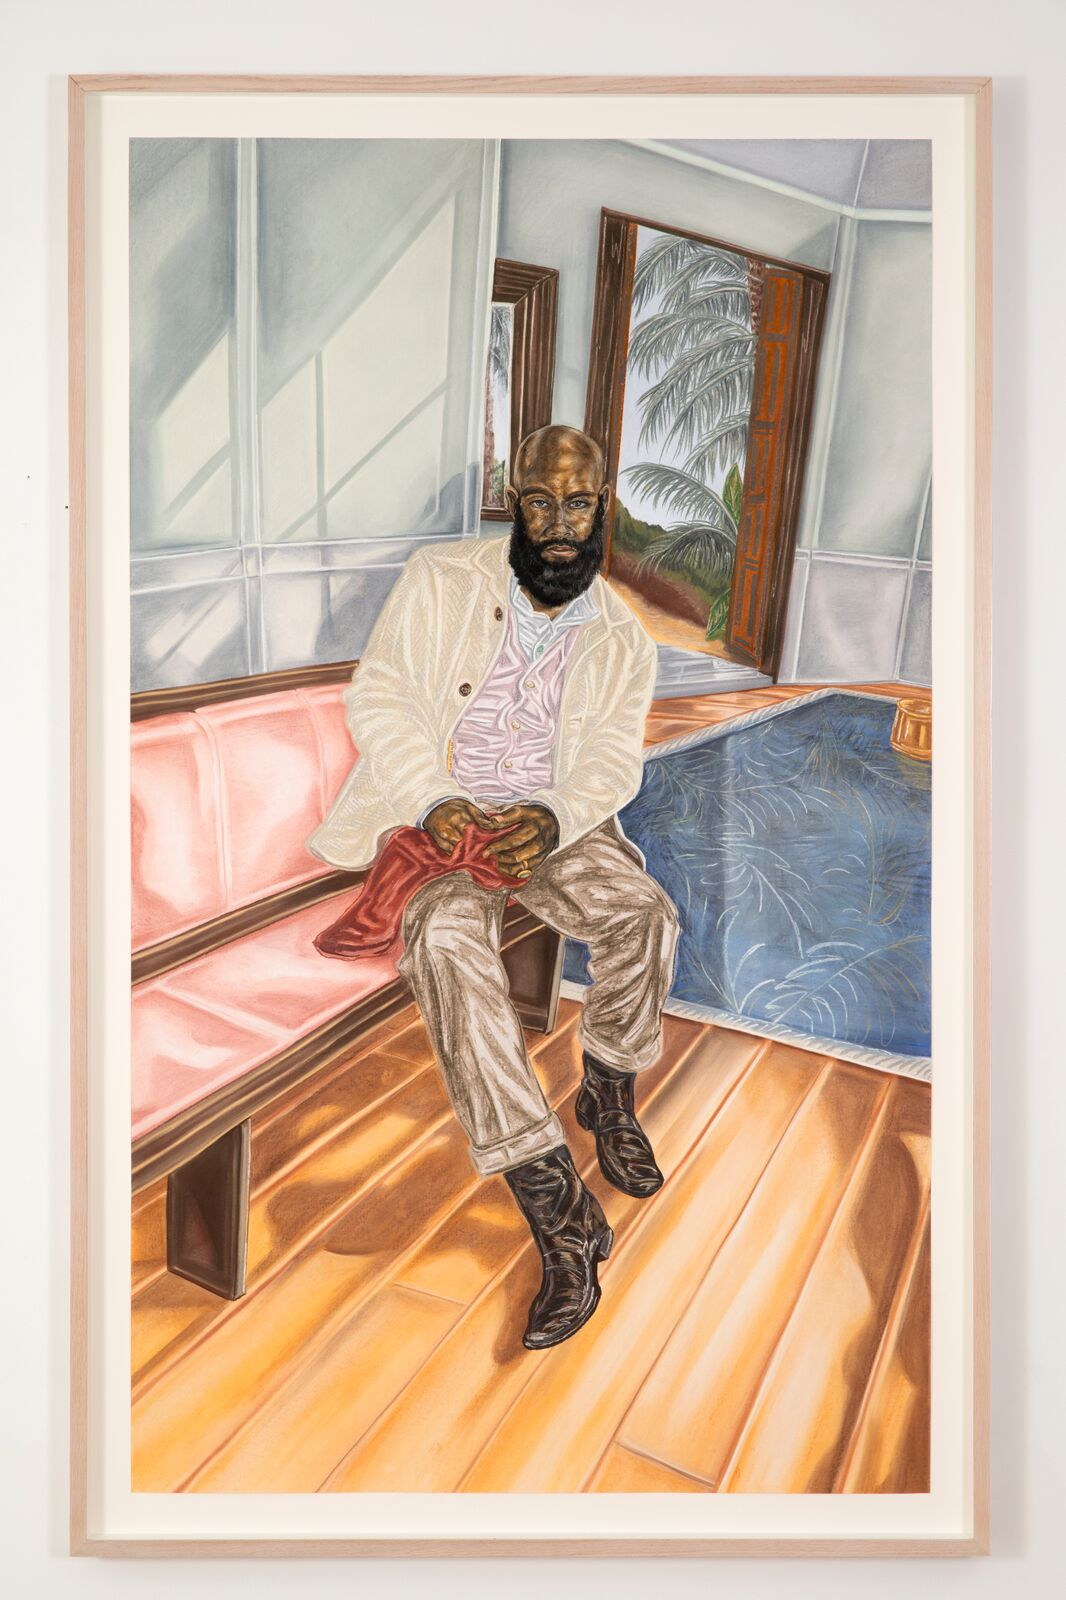 Toyin Ojih Odutola (b. 1985),Years Later - Her Scarf, 2017. Charcoal, pastel and pencil on paper, 72 x 42 in. ©Toyin Ojih Odutola. Courtesy of the artist and Jack Shainman Gallery, New York